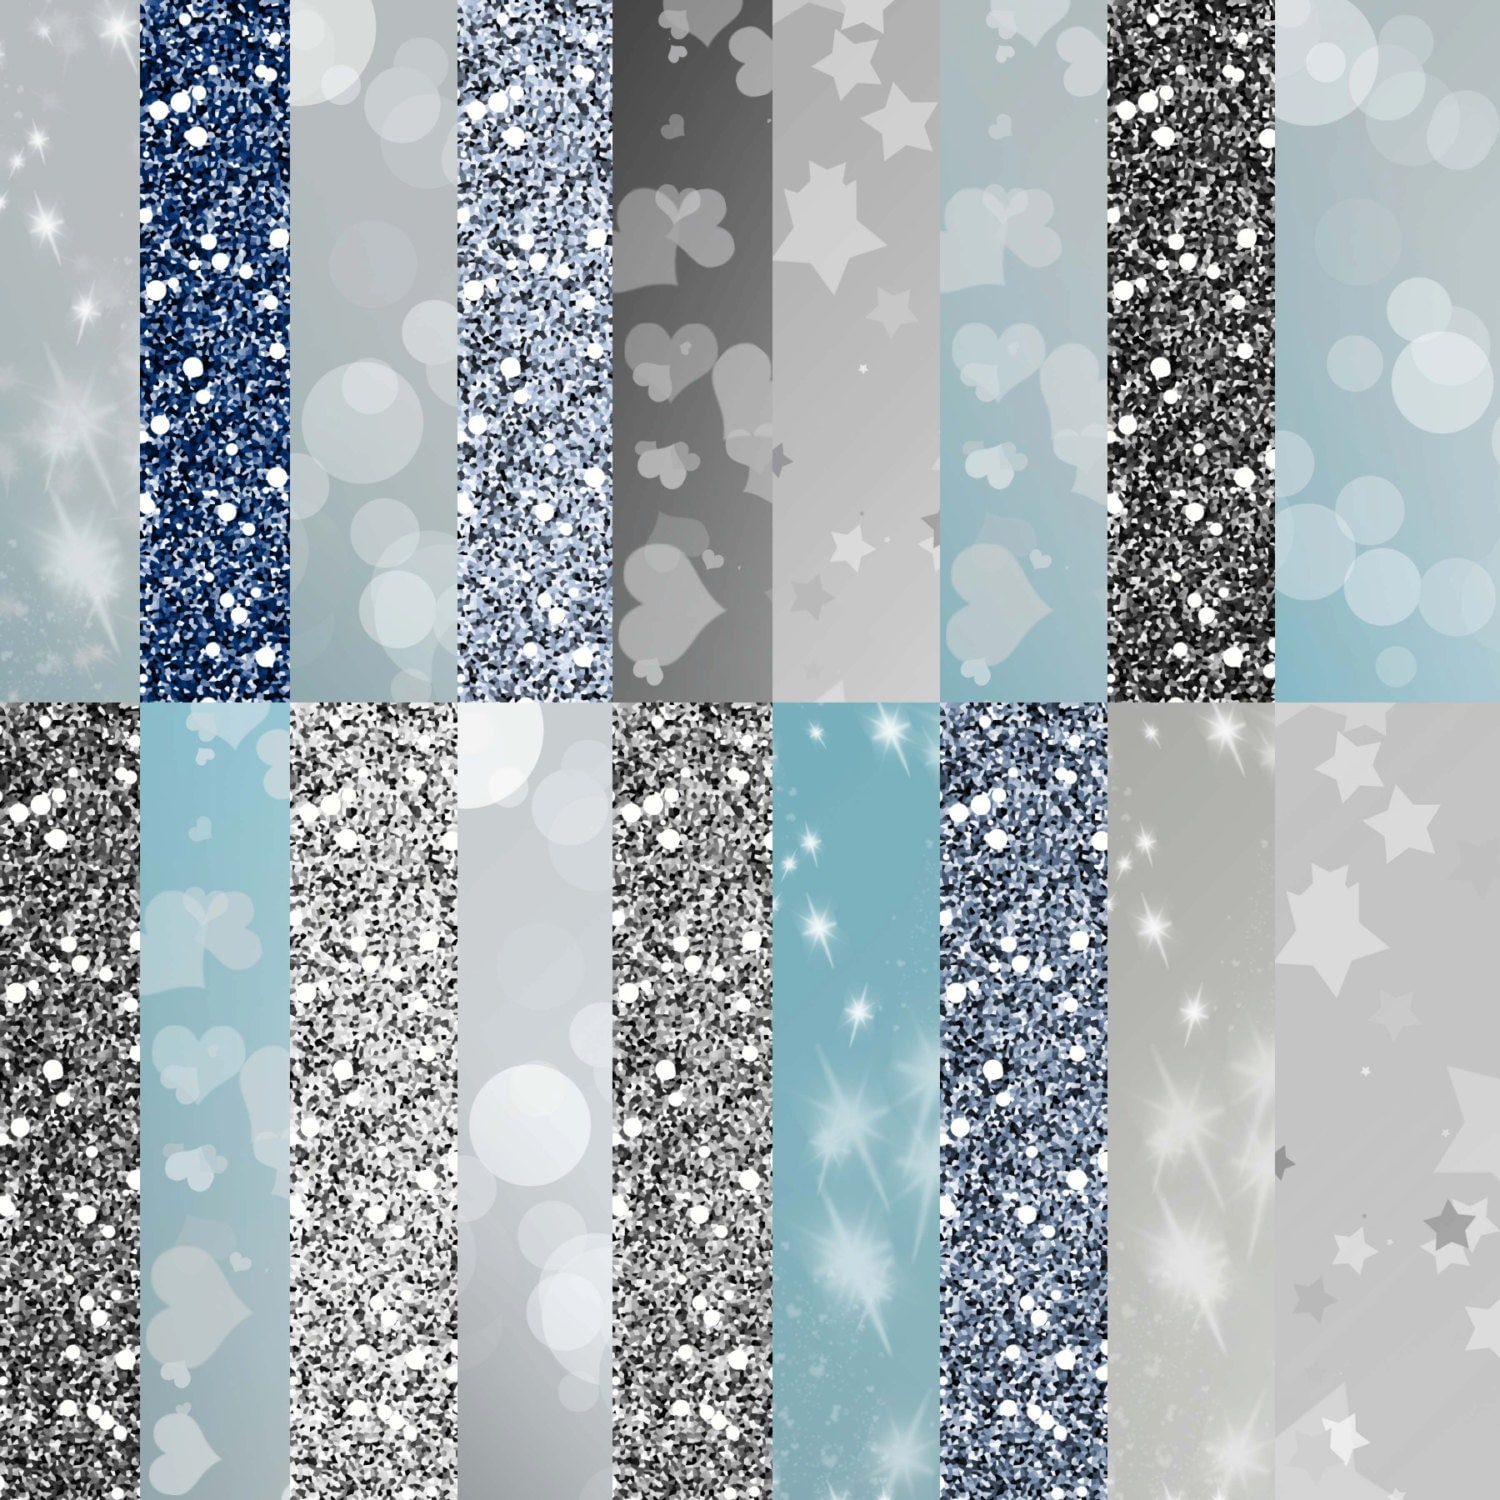 How to scrapbook with glitter - Silver Digital Paper Silver Digital Papers Pack Silver Glitter Paper Silver Bokeh Paper Silver Background Scrapbook Paper